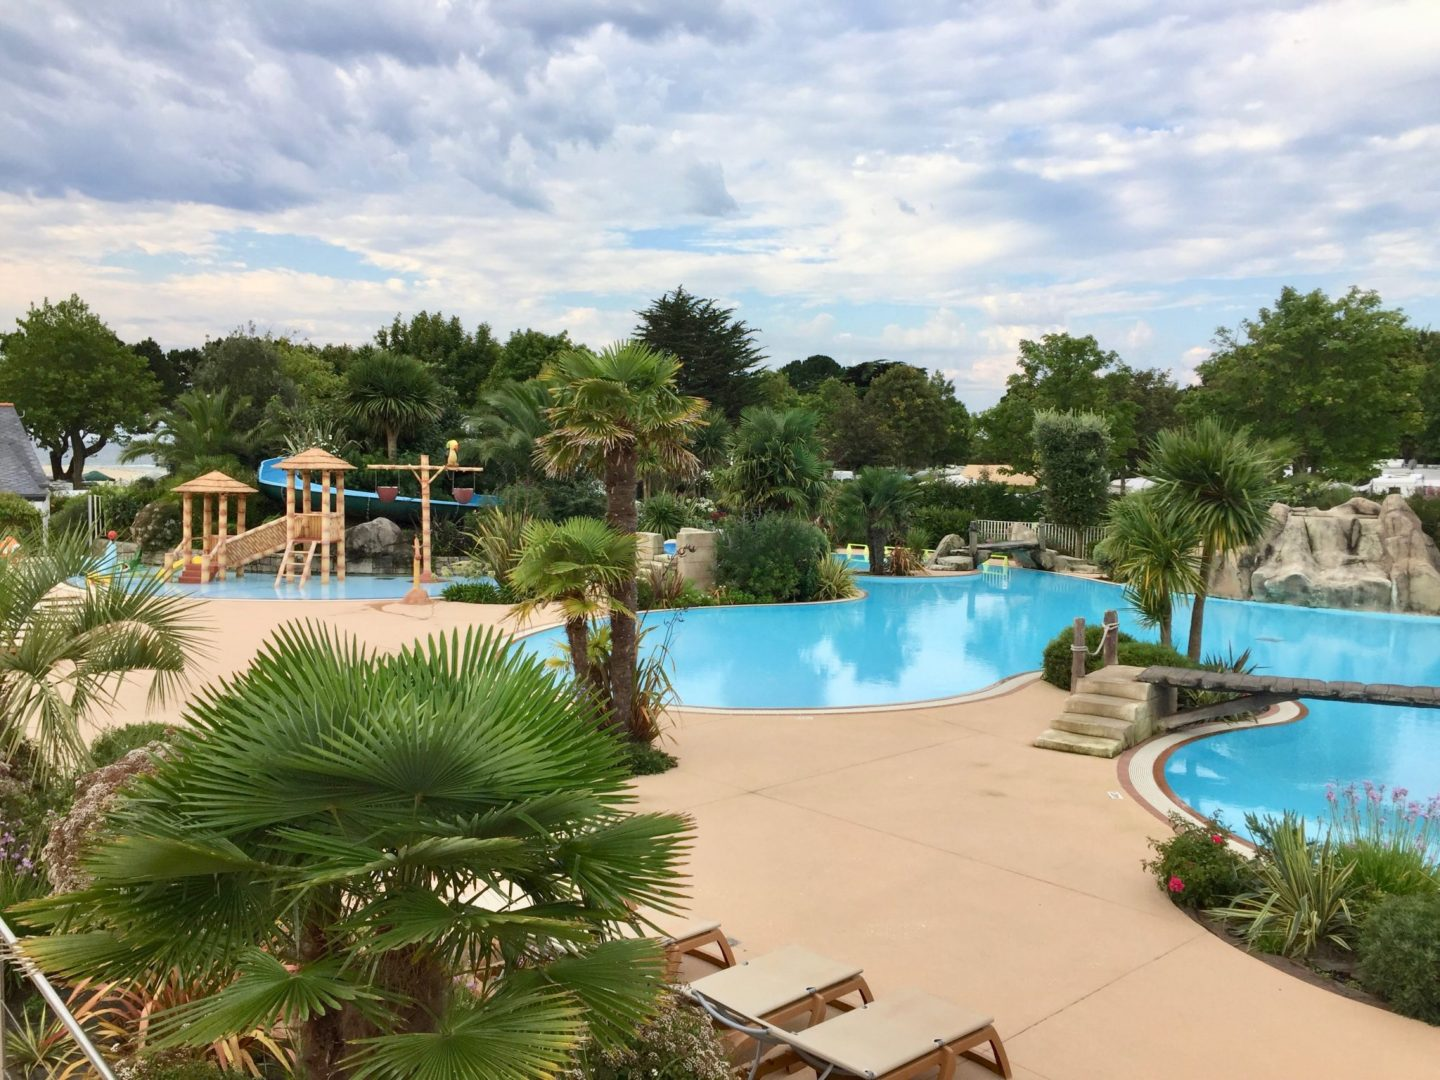 Pool - Review Camping Du Letty, Benodet